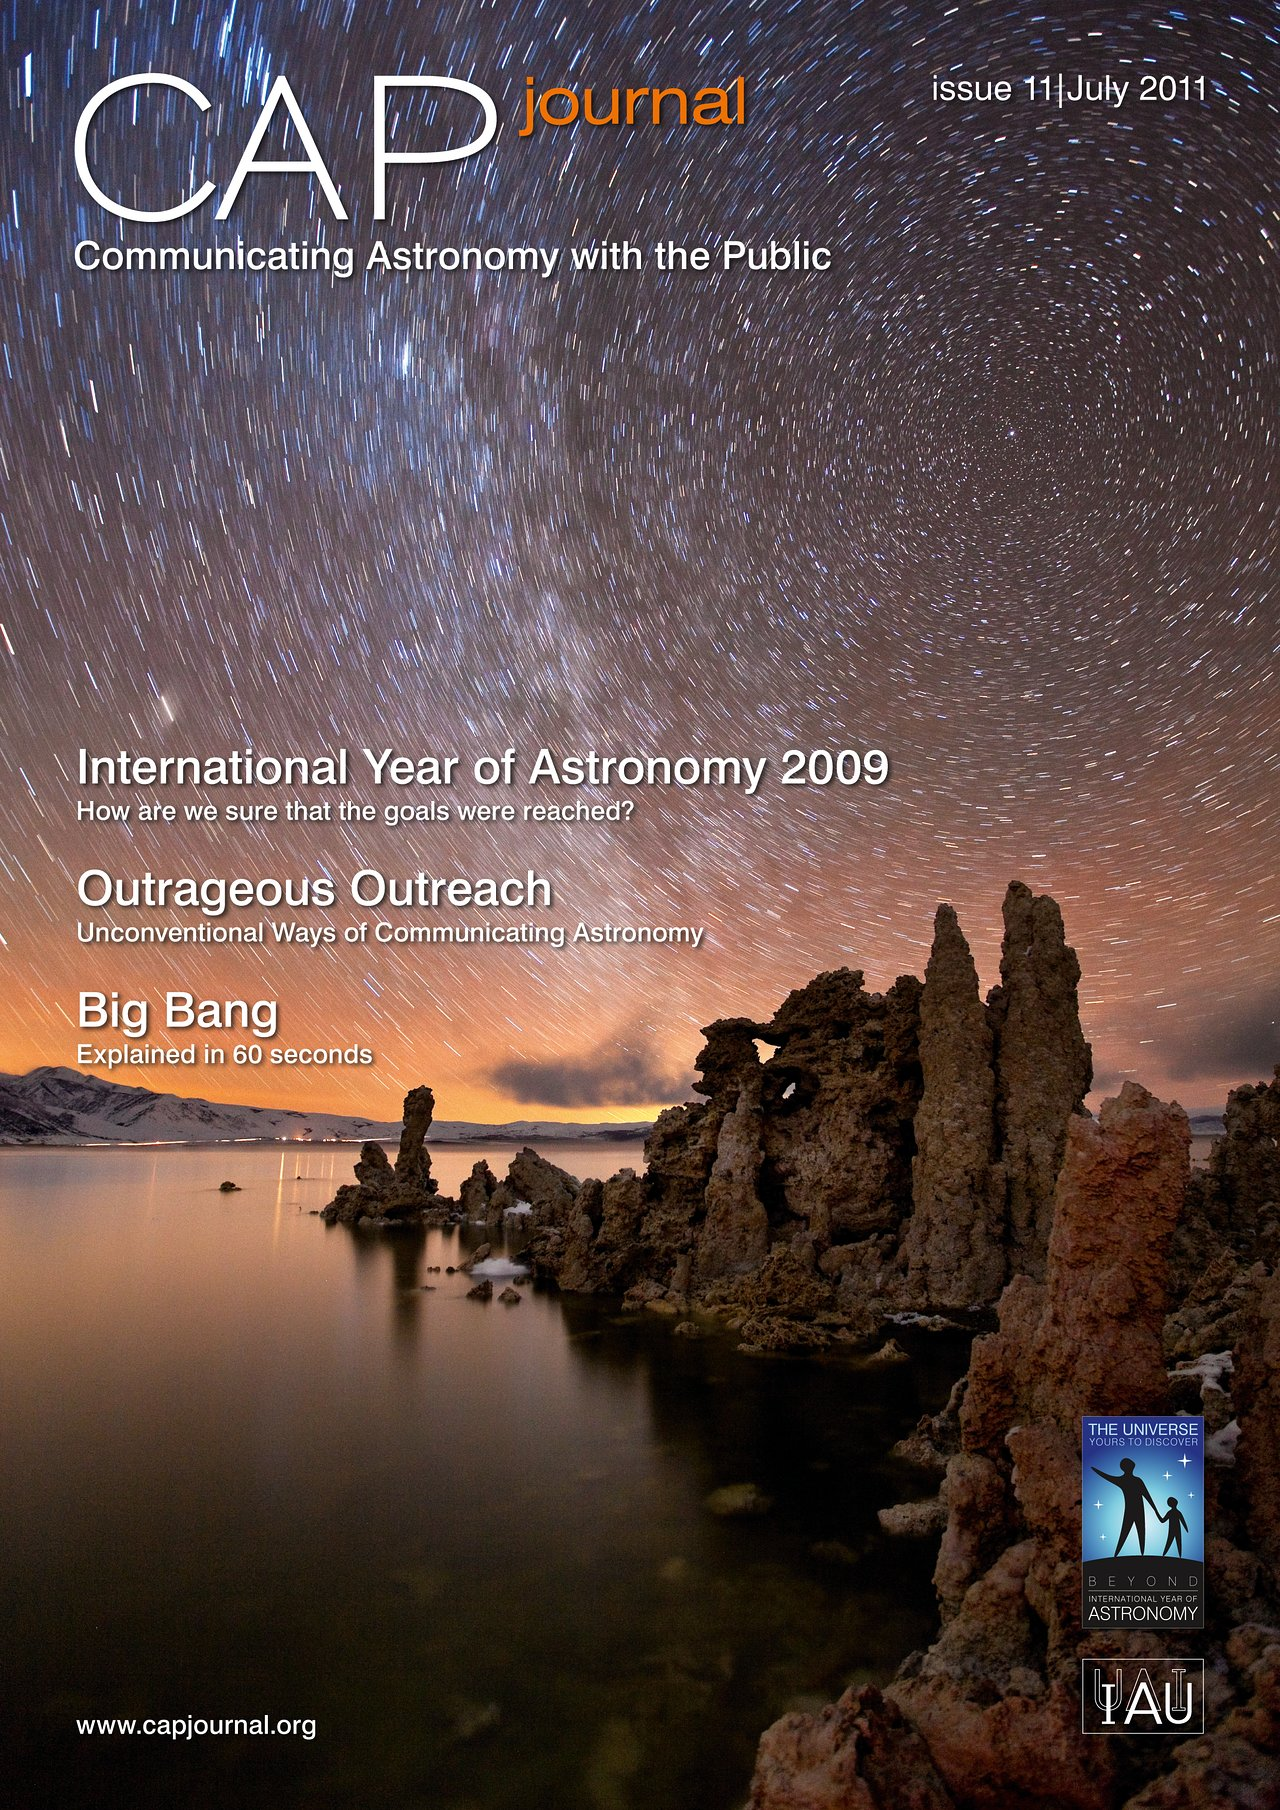 Cover of CAPjournal issue 11